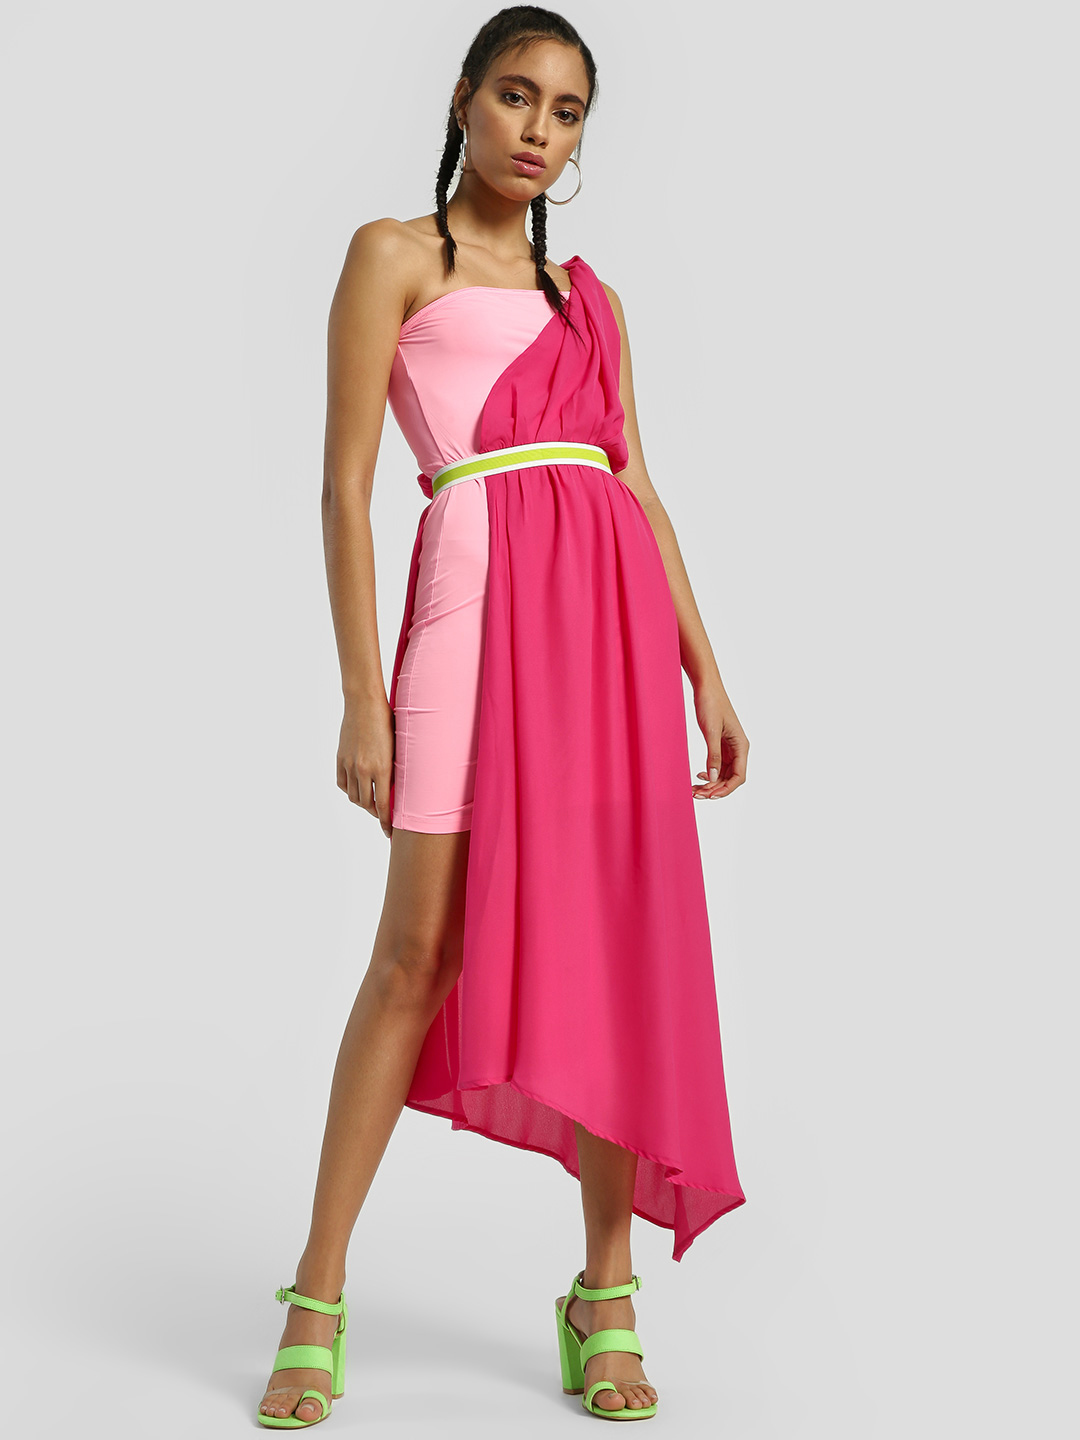 KOOVS Pink Colour Block One-Shoulder Asymmetric Dress 1